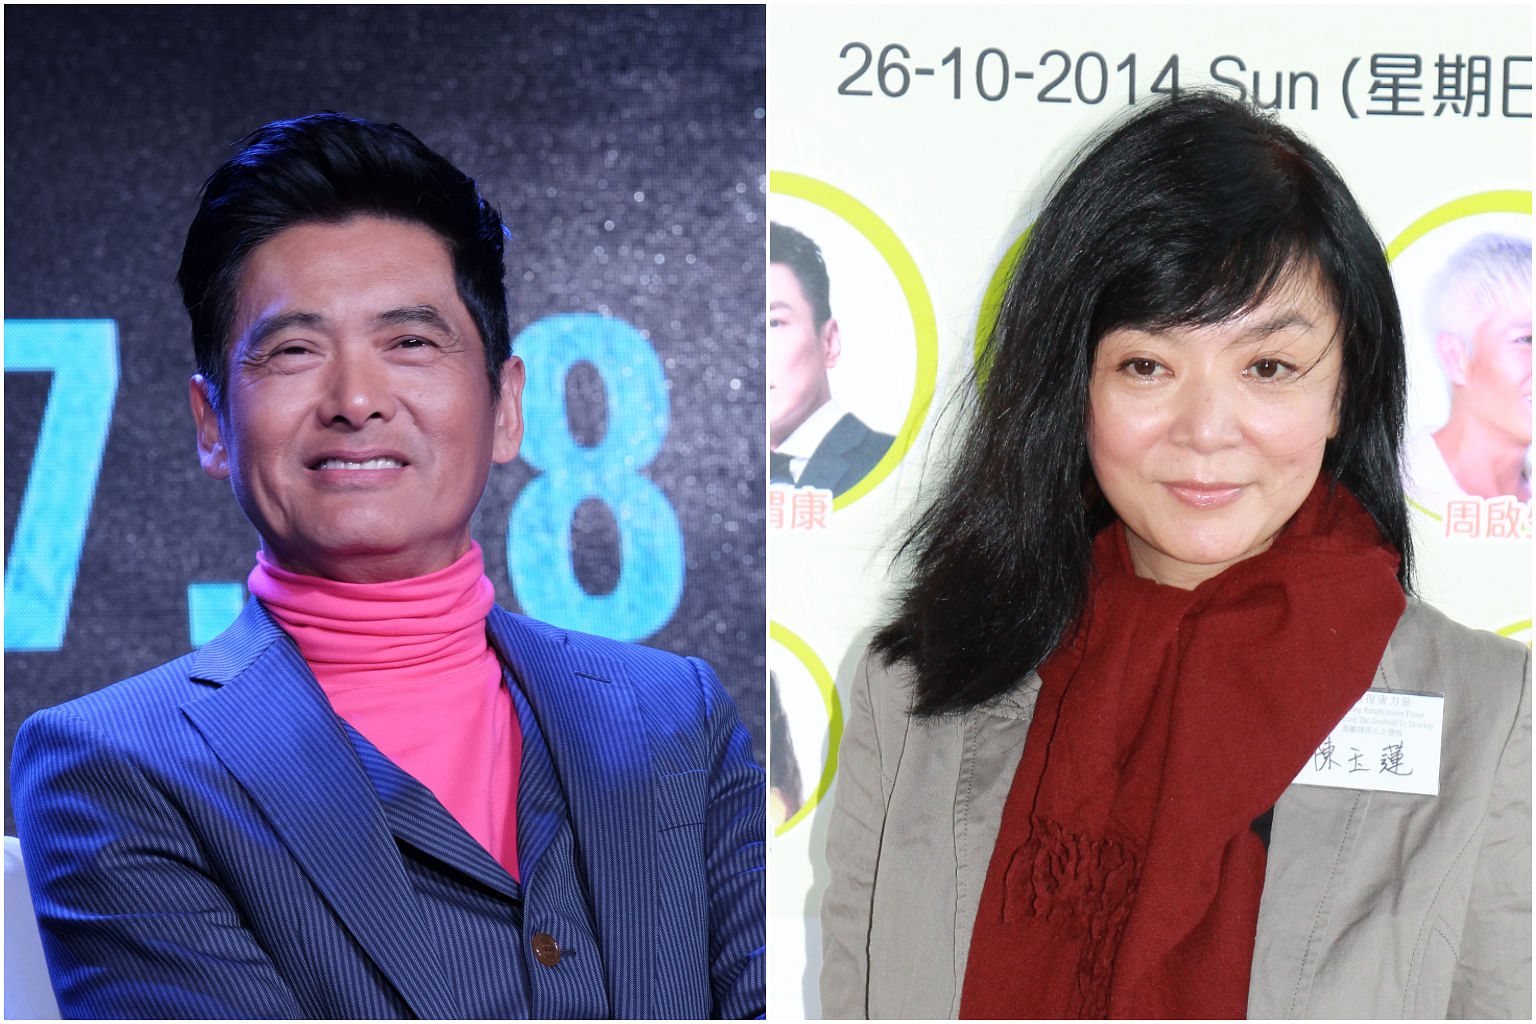 Chow Yun Fat's former girlfriend Idy Chan says they split up because